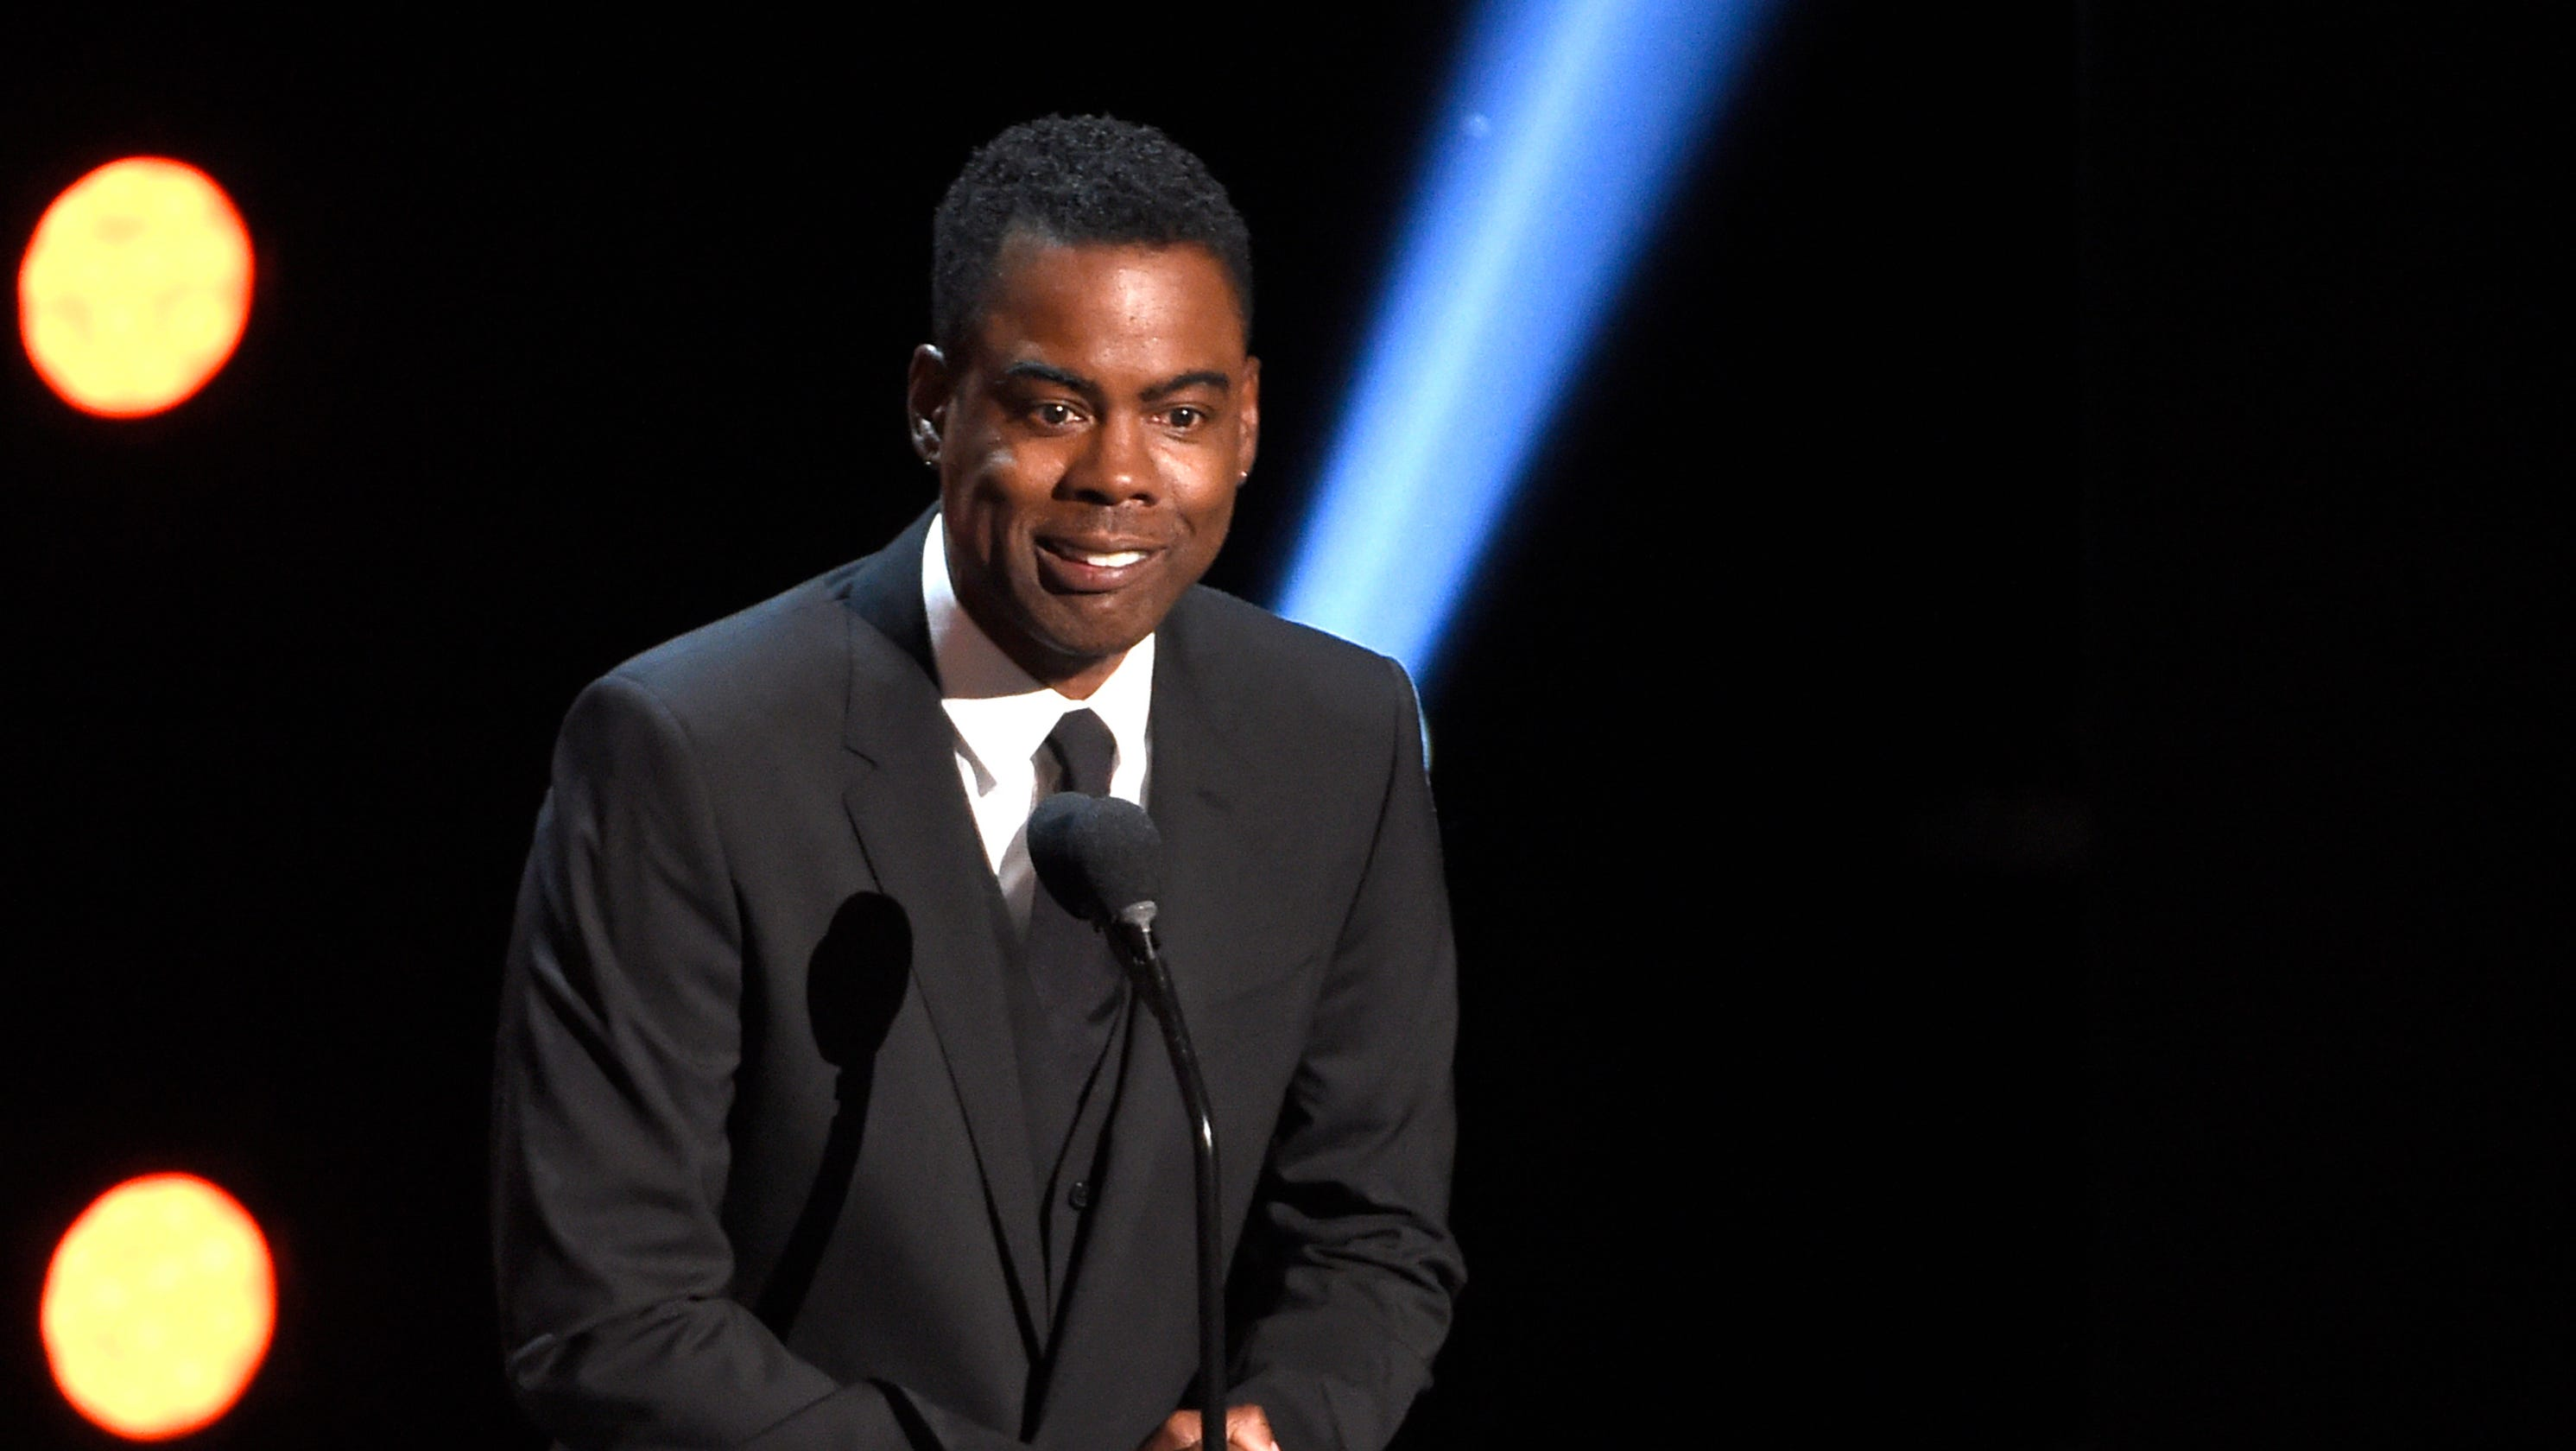 Chris Rock promises 'Saw' fans there will be horror in his